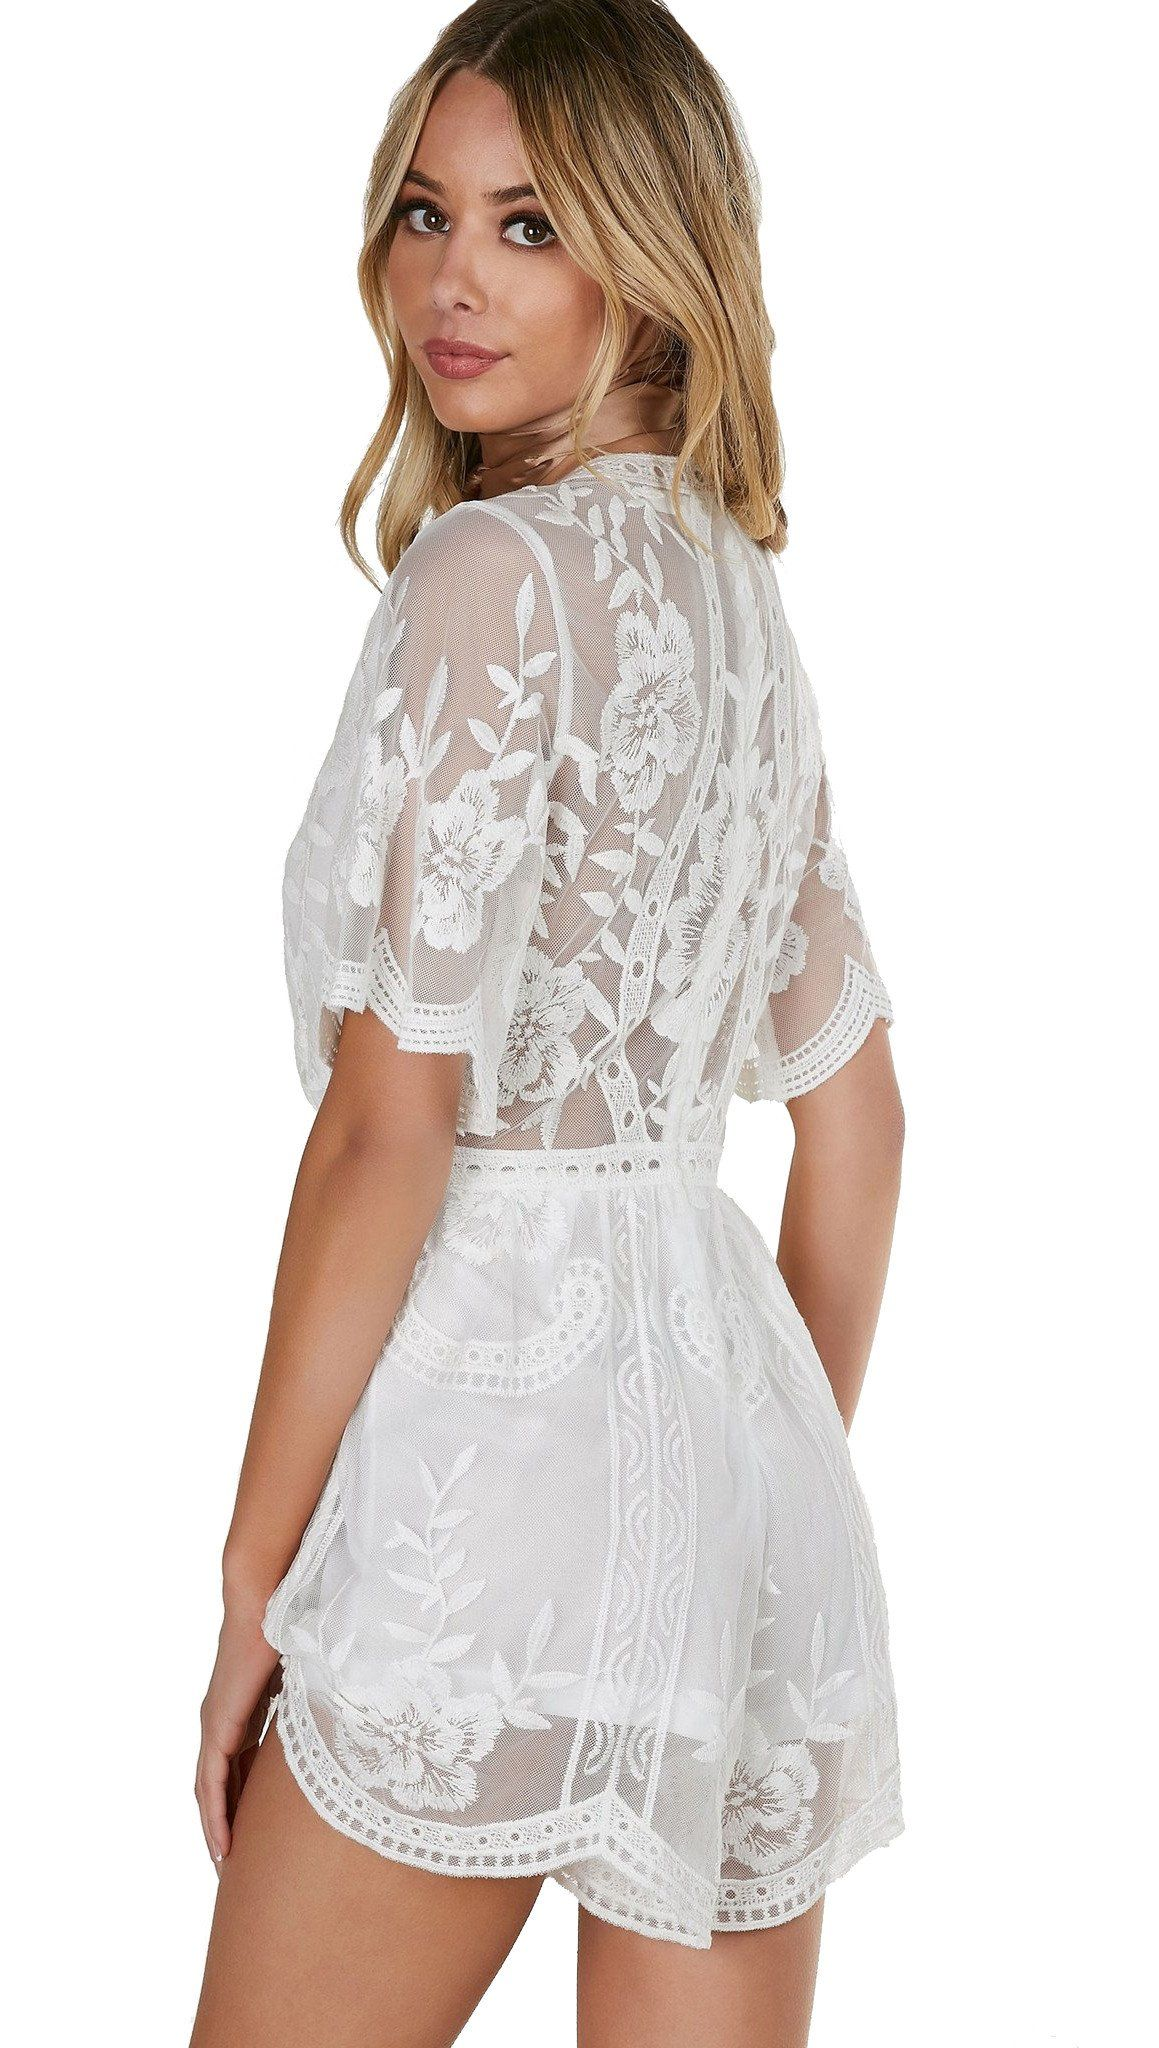 Honey Punch Antique Embroidered Crochet Deep V Neck Romper White Lace Click Image To Assess Even More Details Thi White Lace Romper Clothes Design Rompers [ 2048 x 1159 Pixel ]